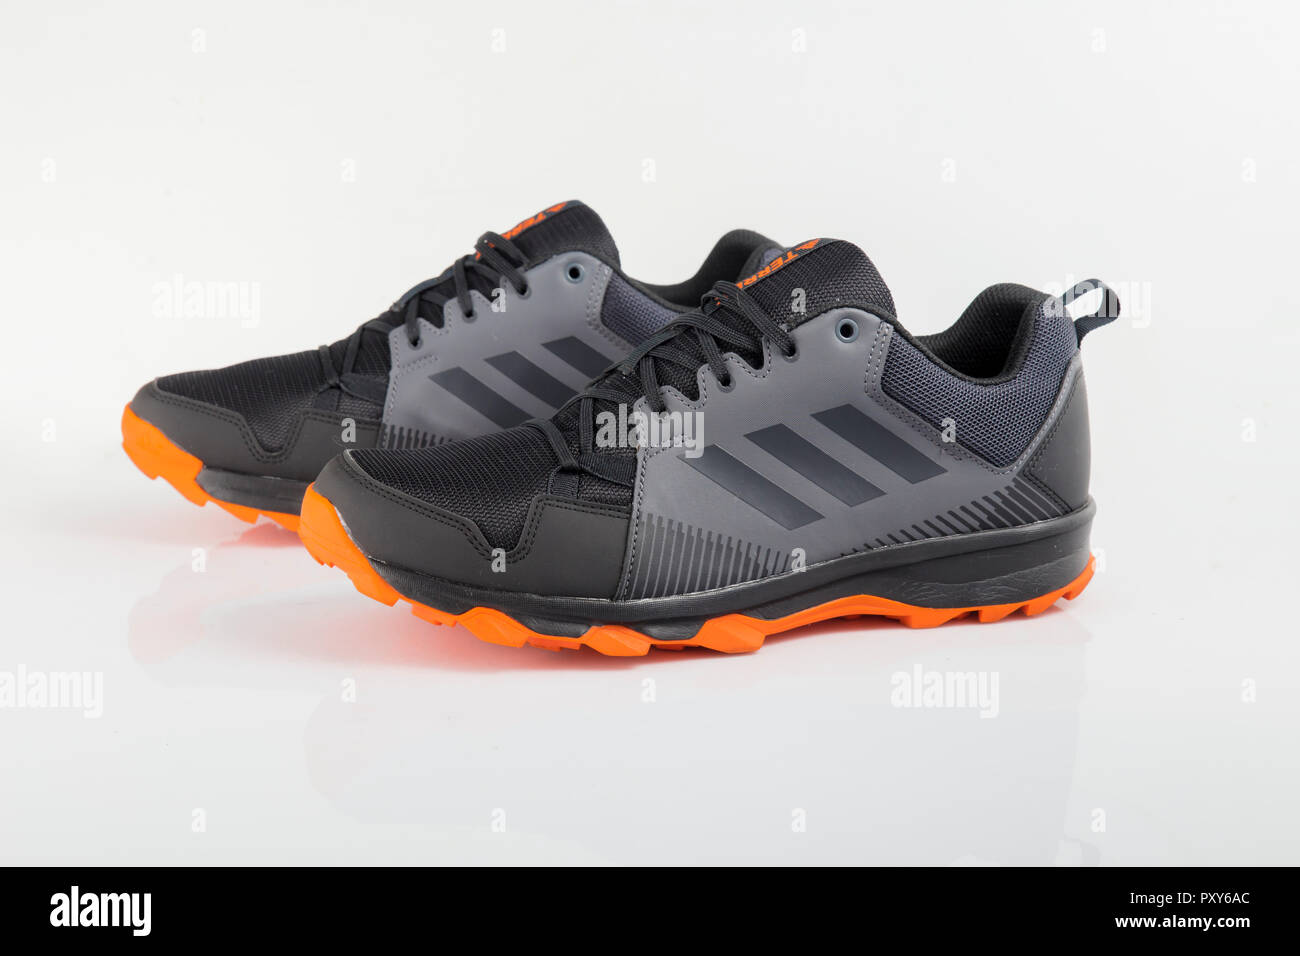 official photos 7e6f9 fb422 Afife, Portugal - Oktober 24, 2018  adidas Running Schuhe. Adidas,  multinationales